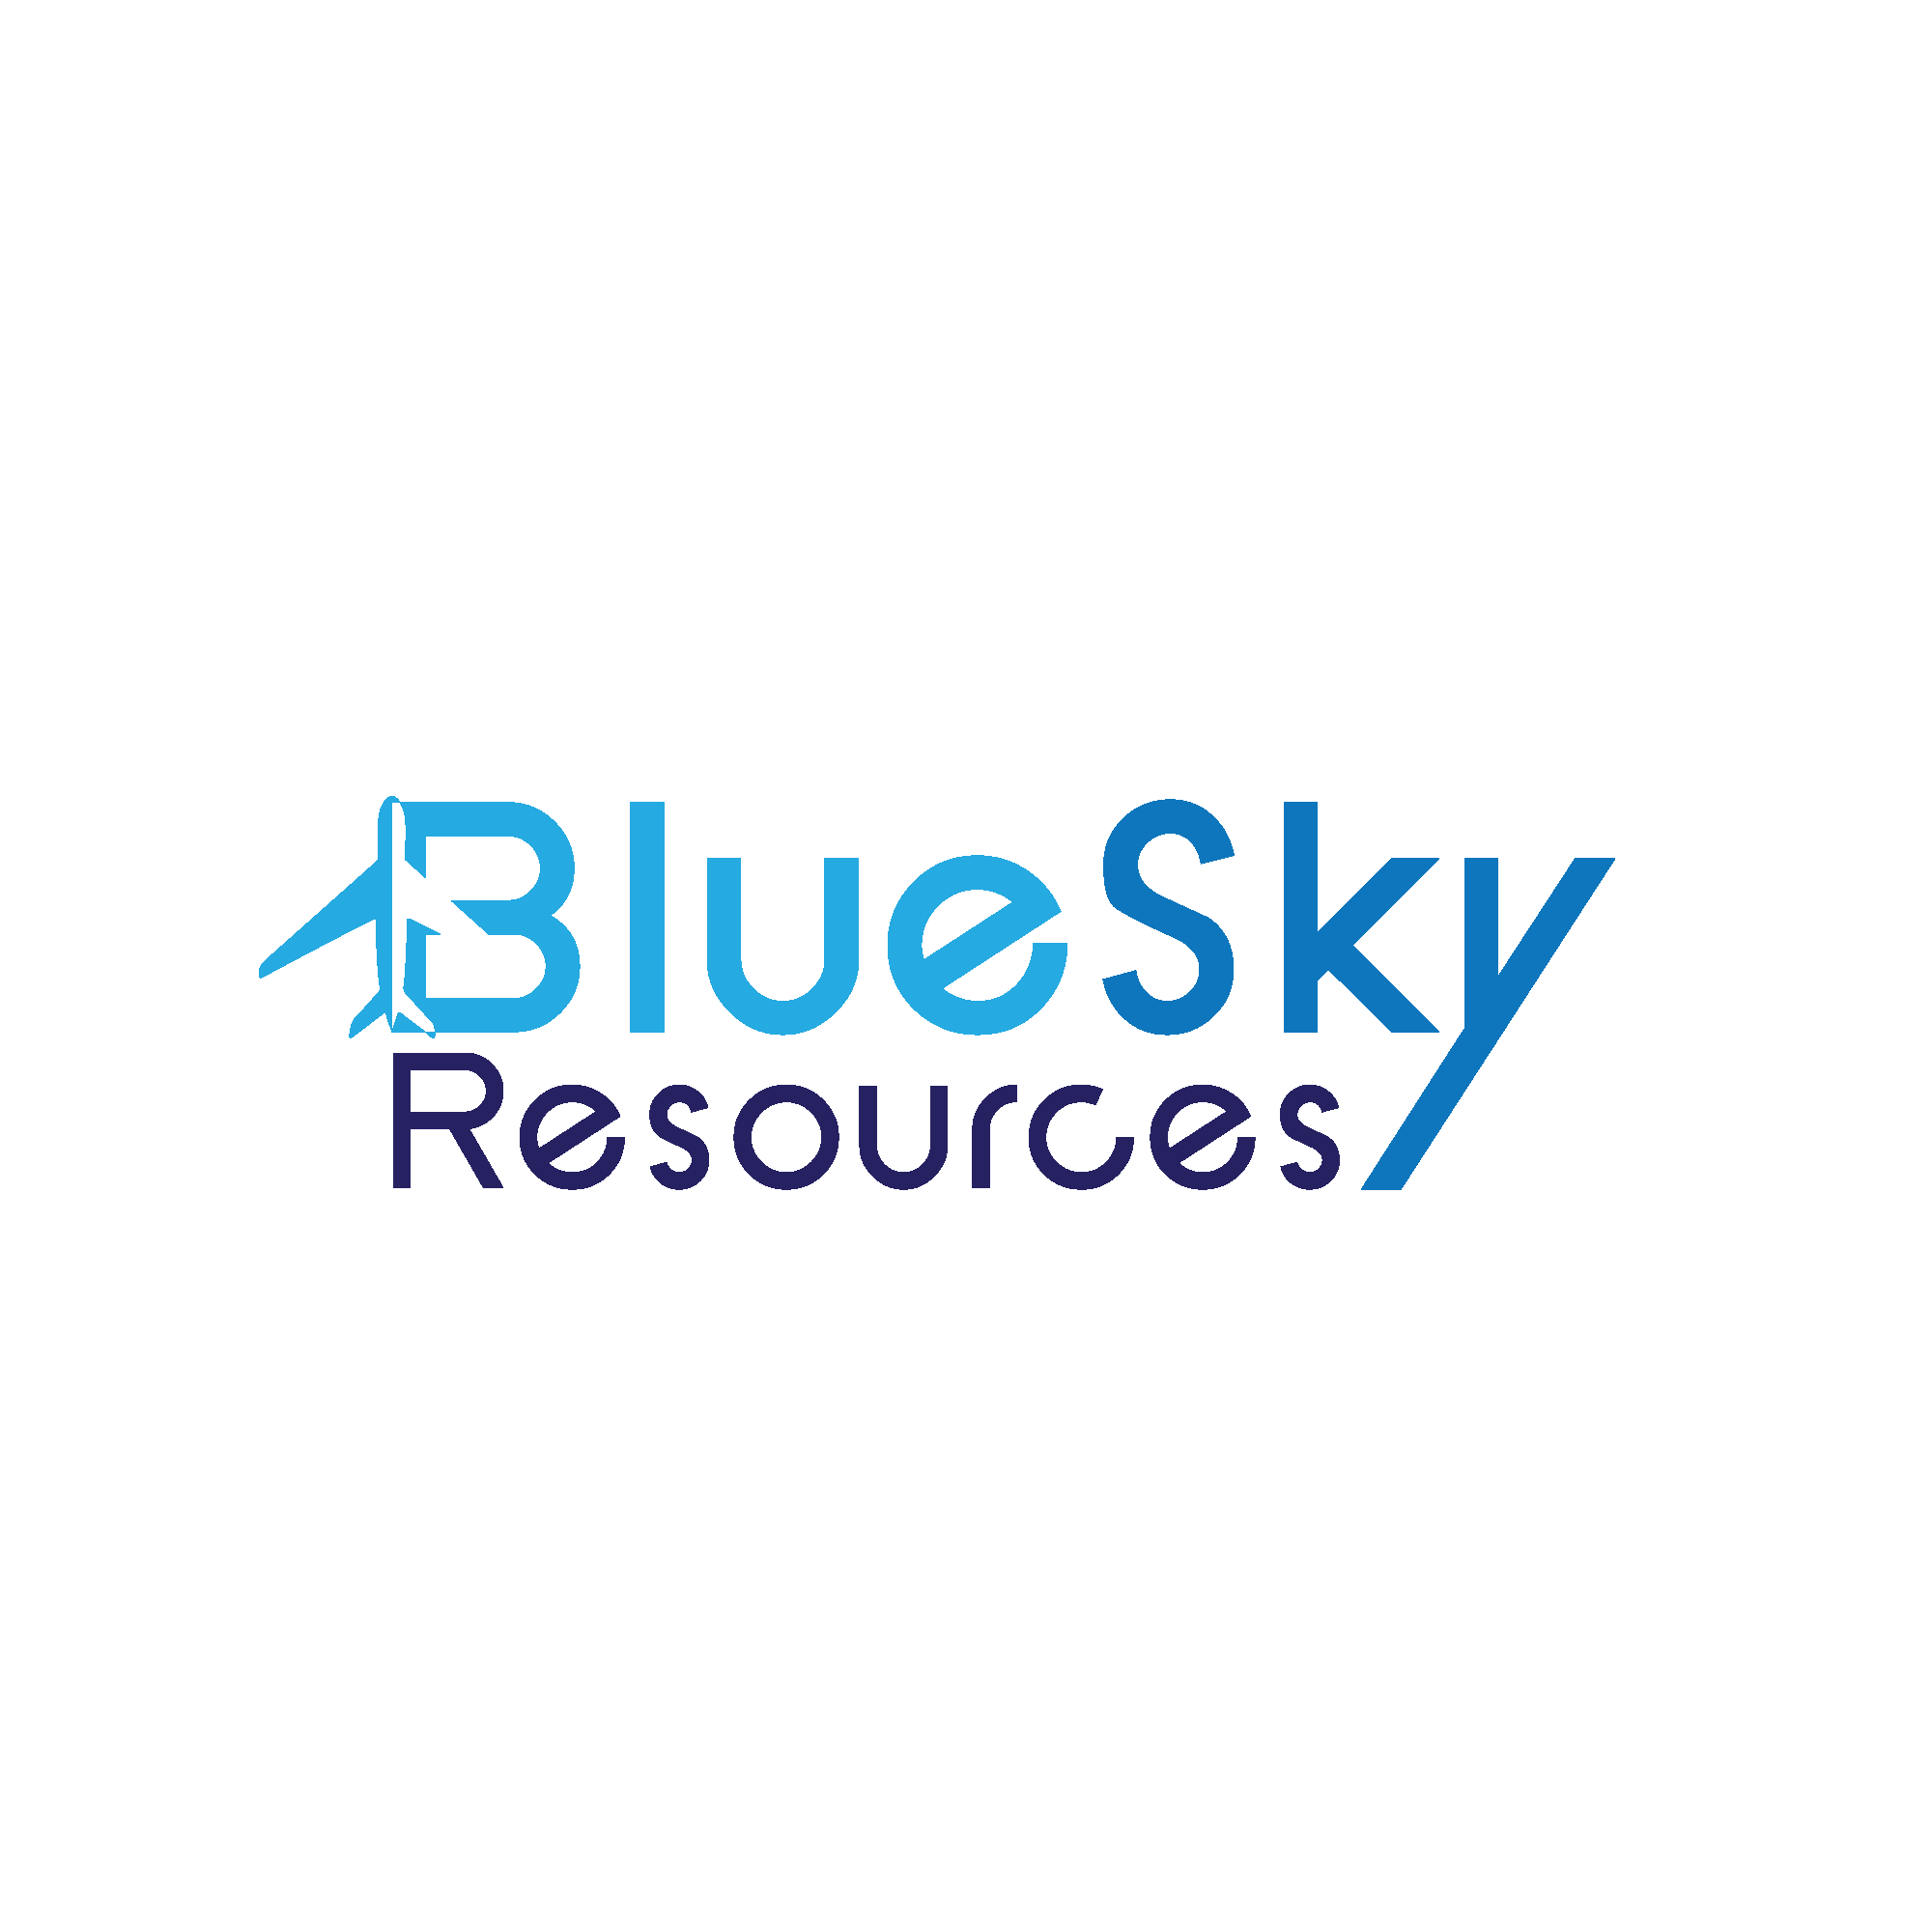 BlueSky Resources